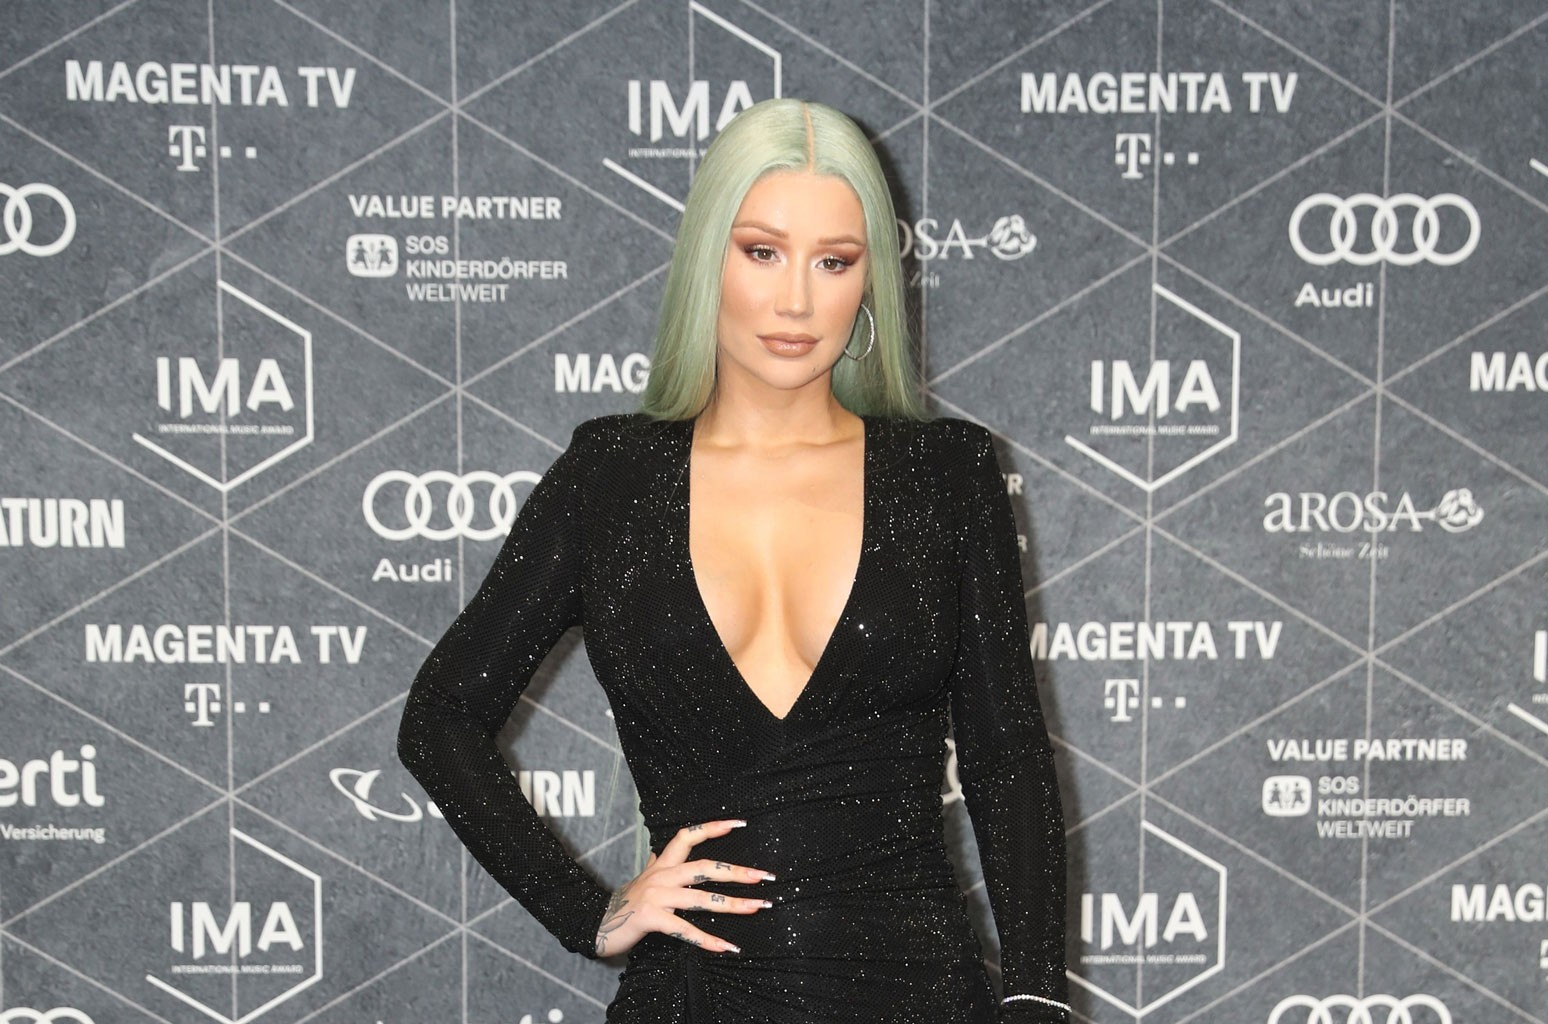 Iggy Azalea Plans to 'Take a Few Years' Away From Music After Next Album